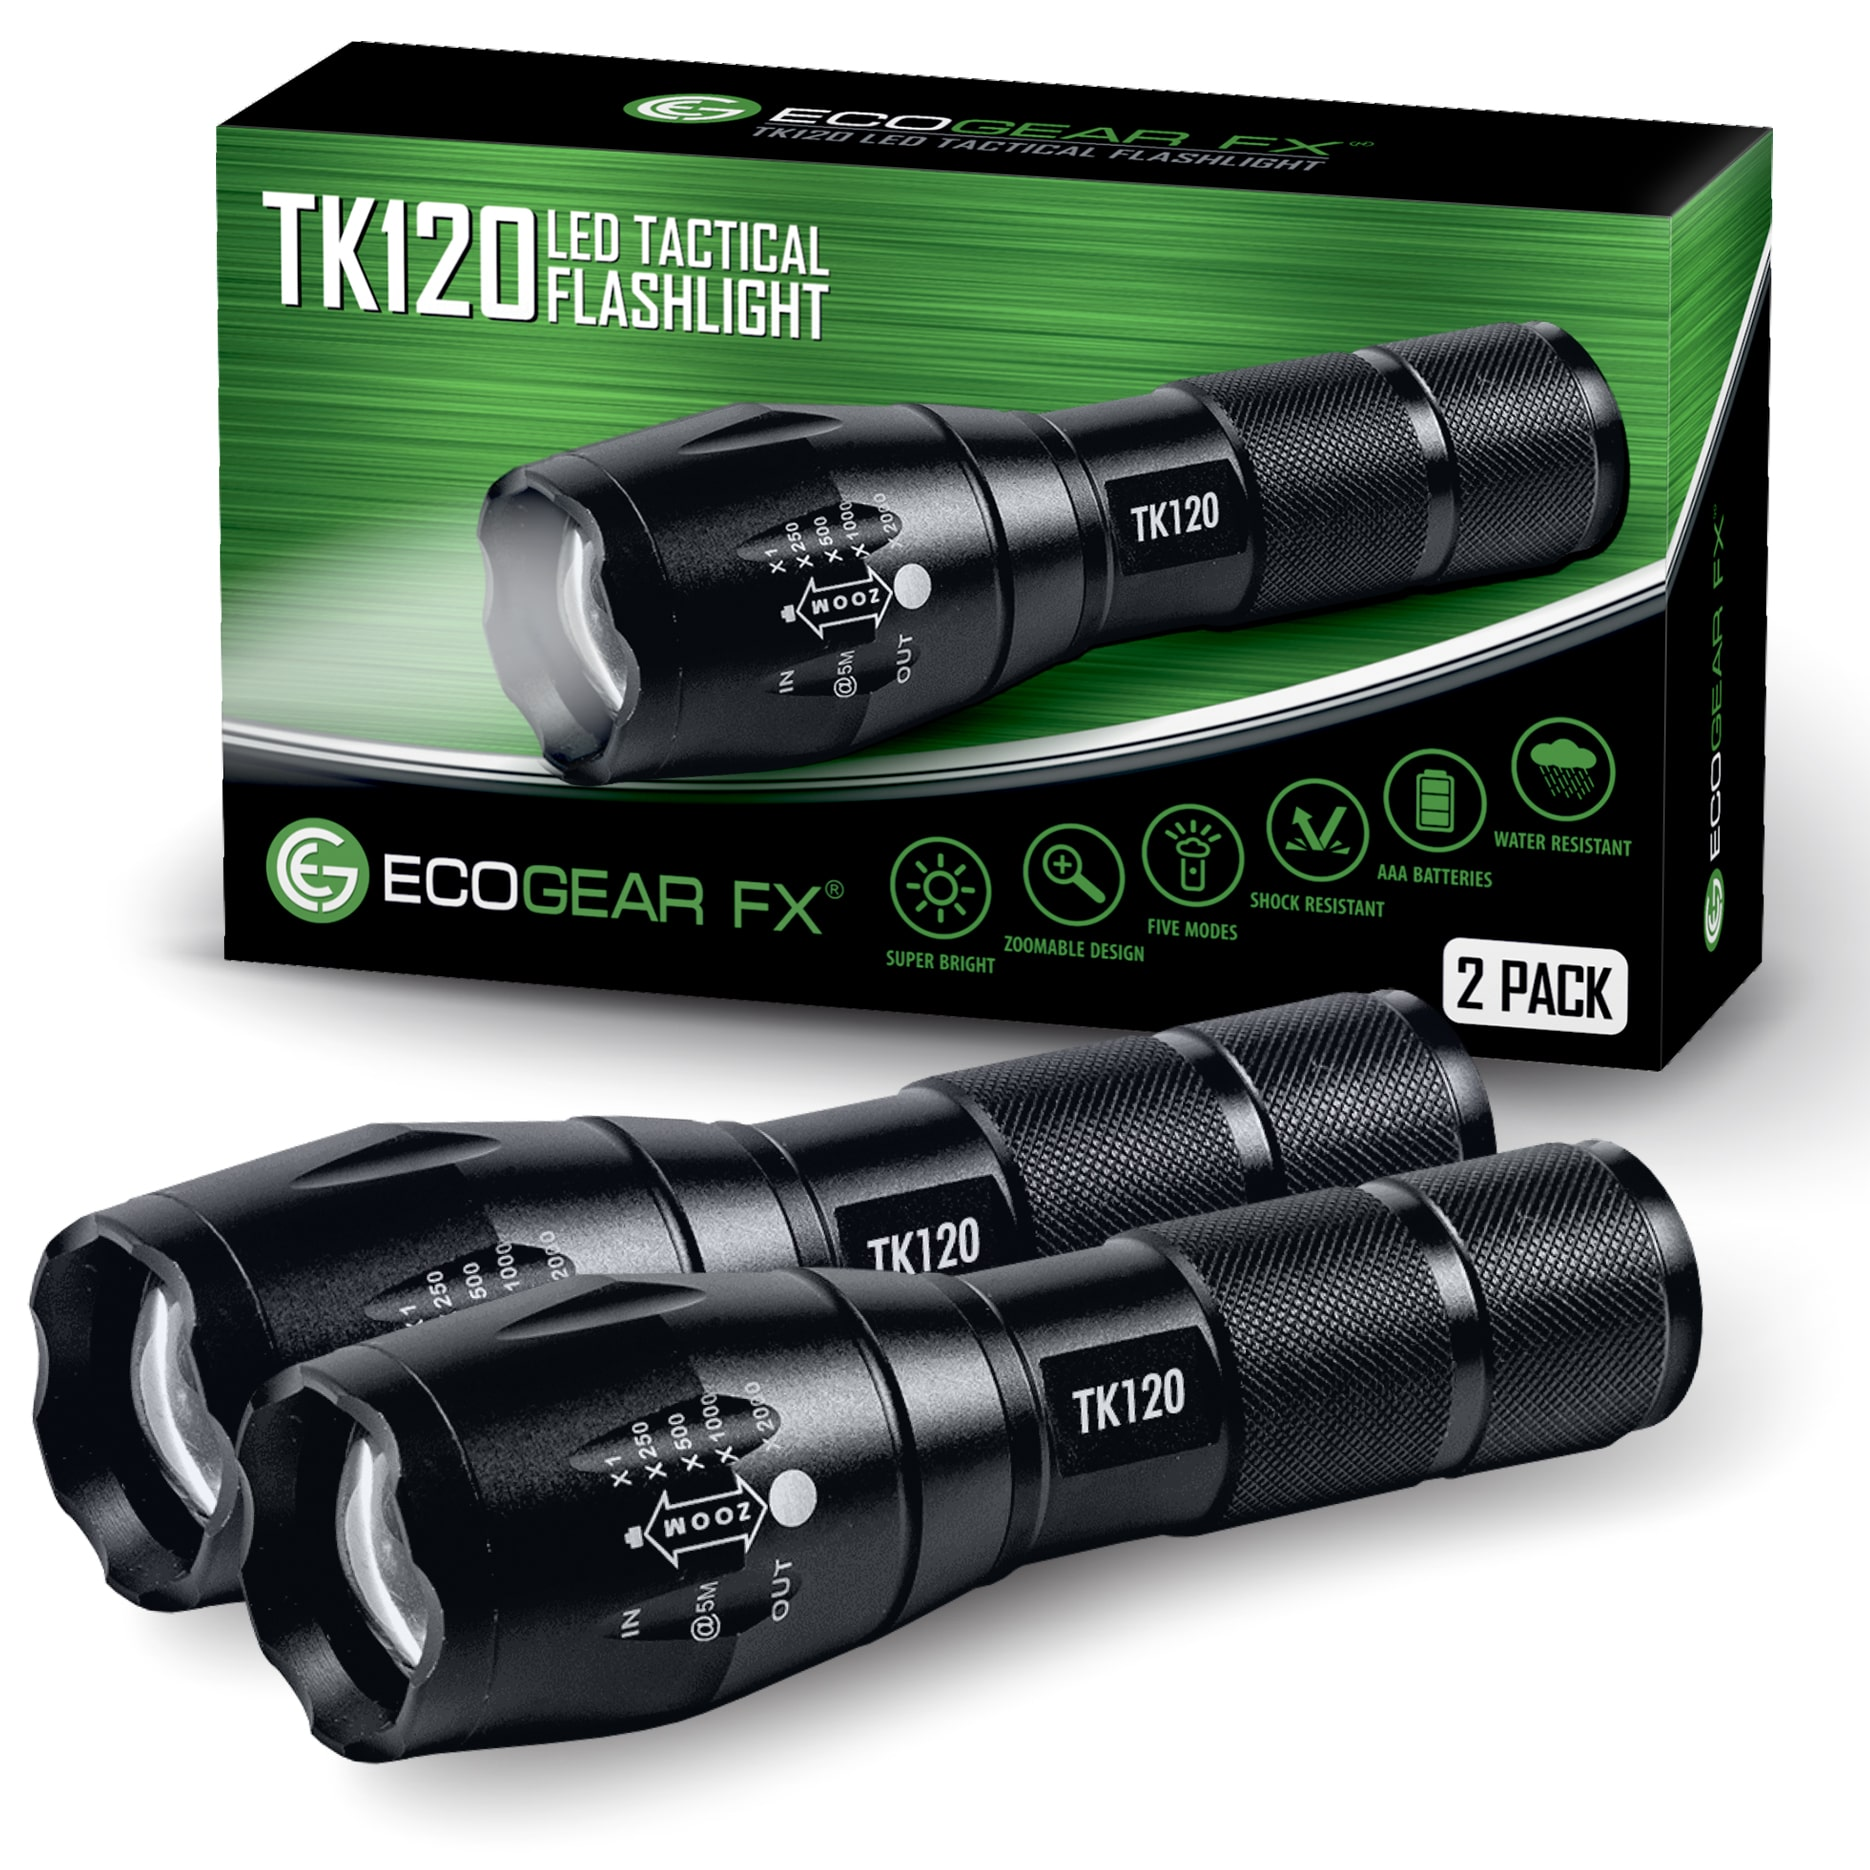 TK120 Tactical LED Flashlight with 5 Light Modes and Zoom (2-Pack)